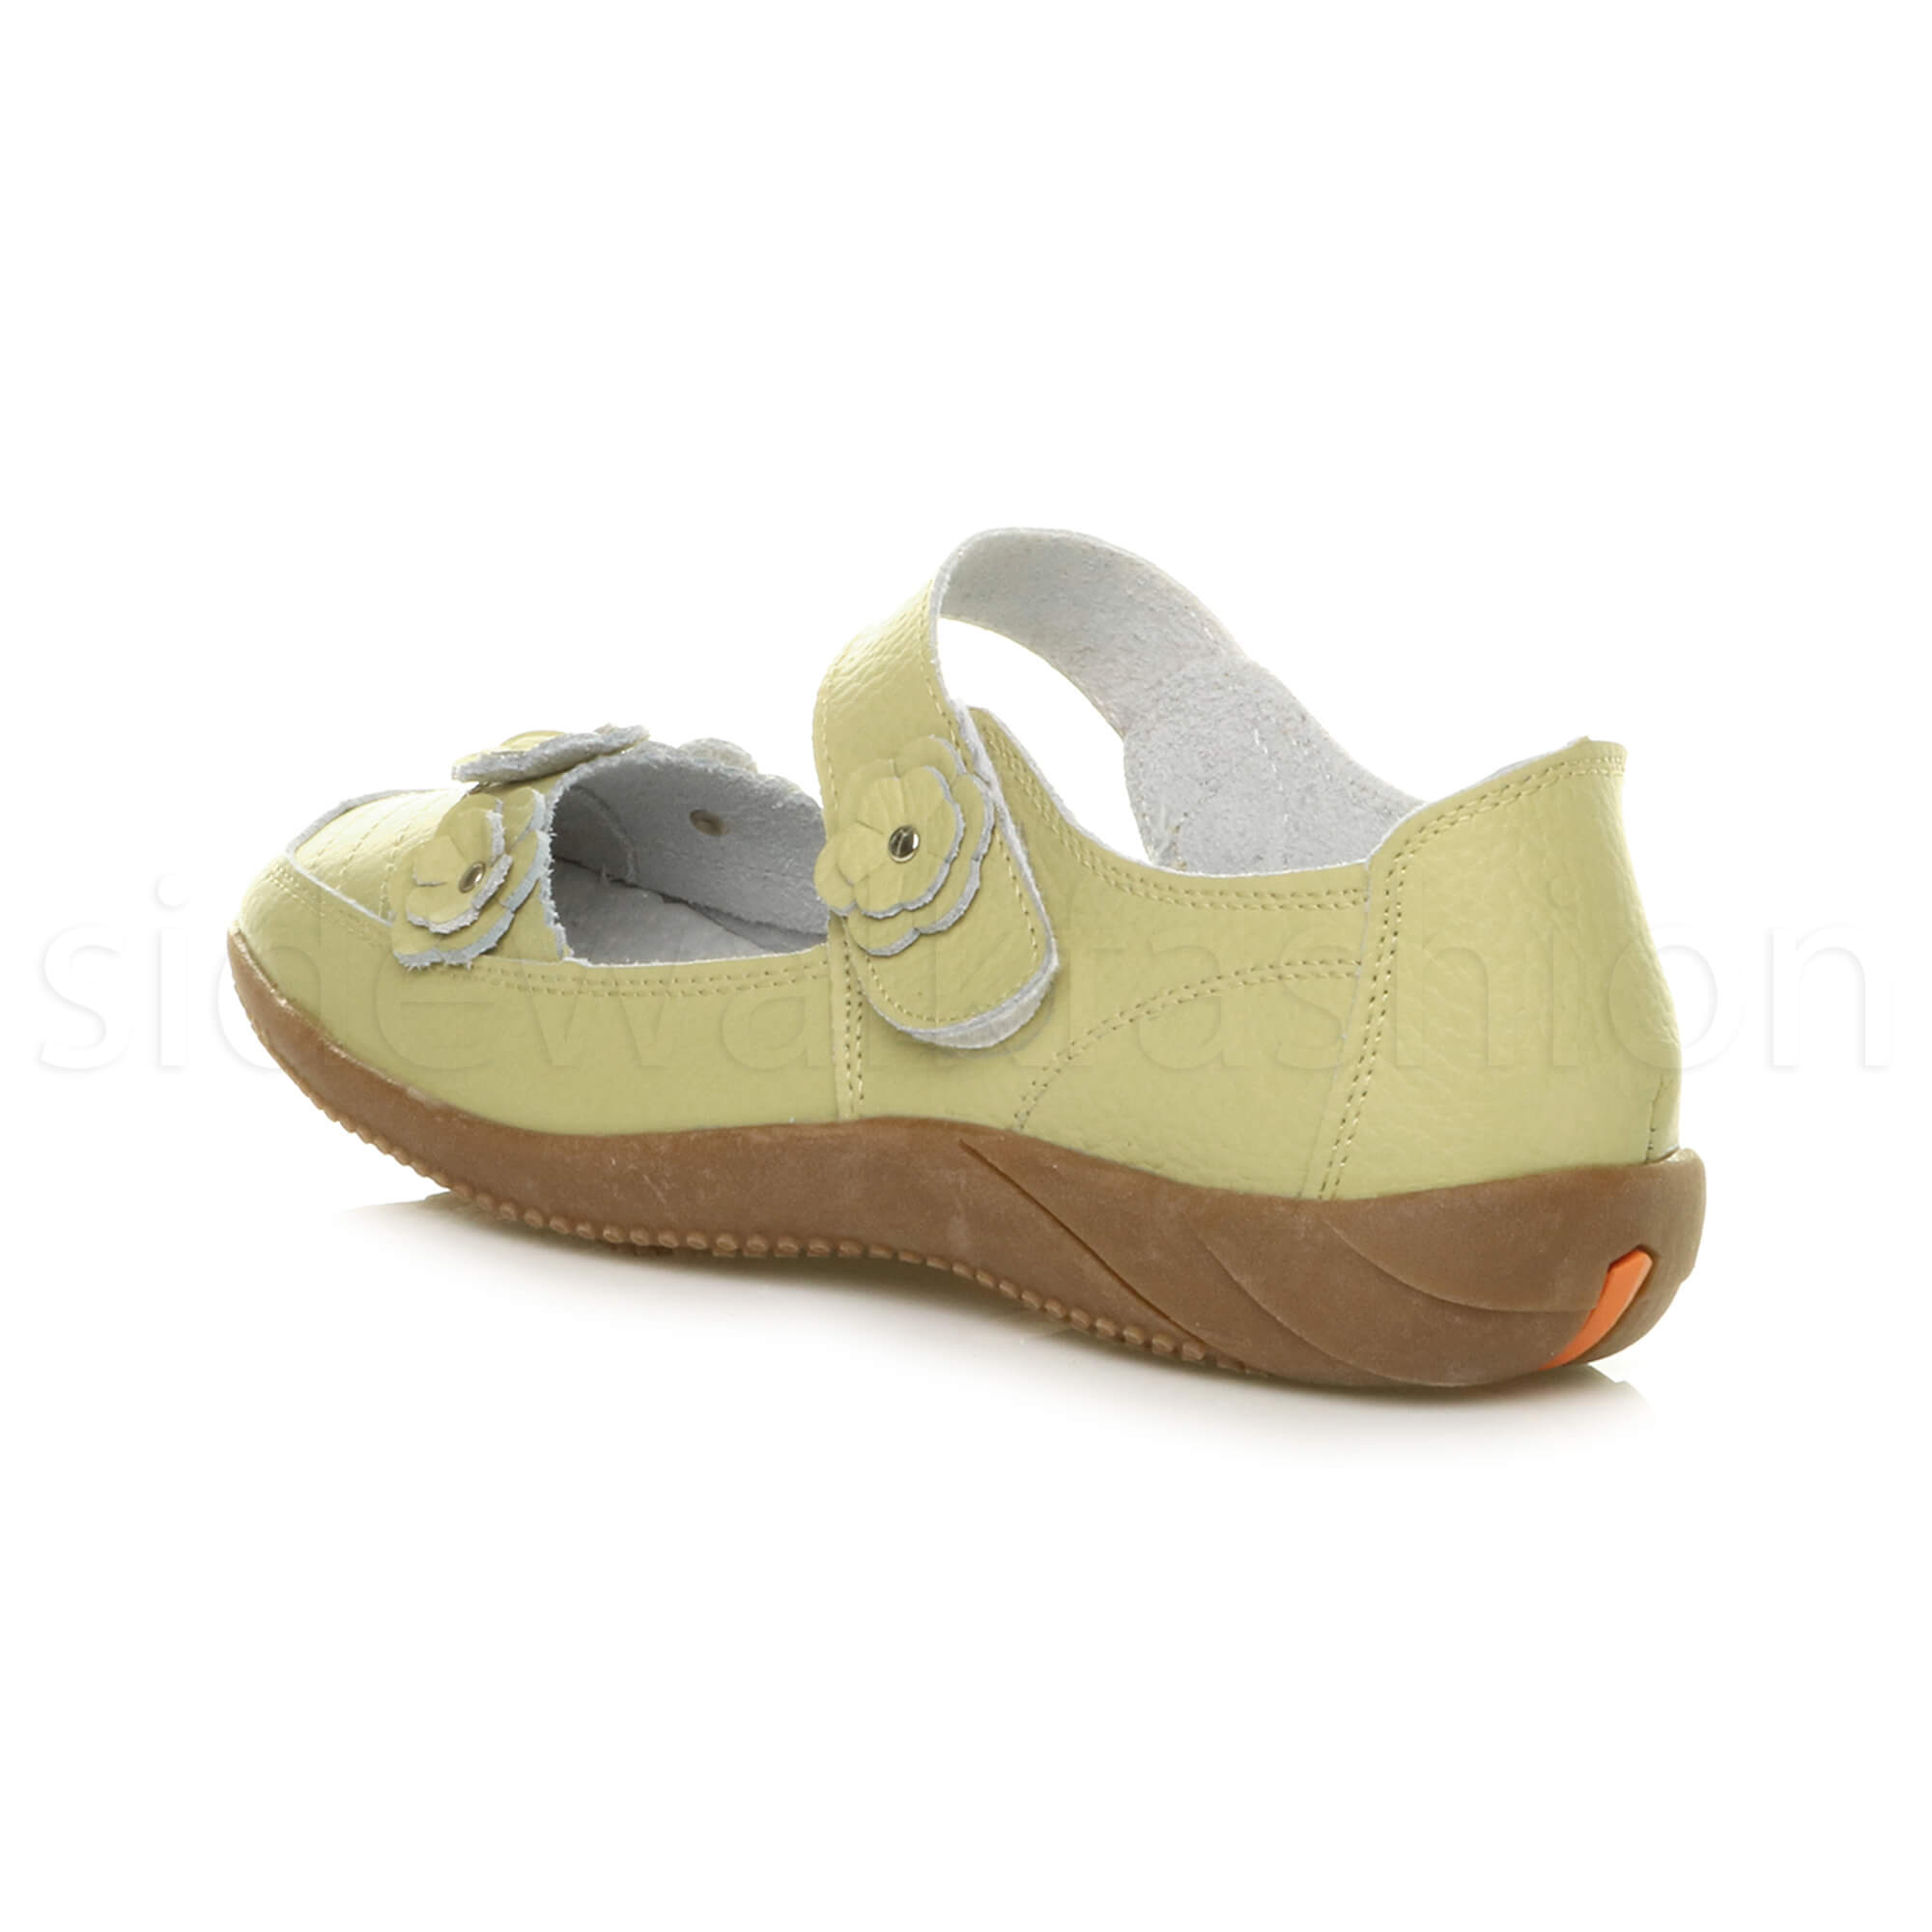 Womens-ladies-leather-comfort-walking-casual-sandals-mary-jane-strap-shoes-size thumbnail 45